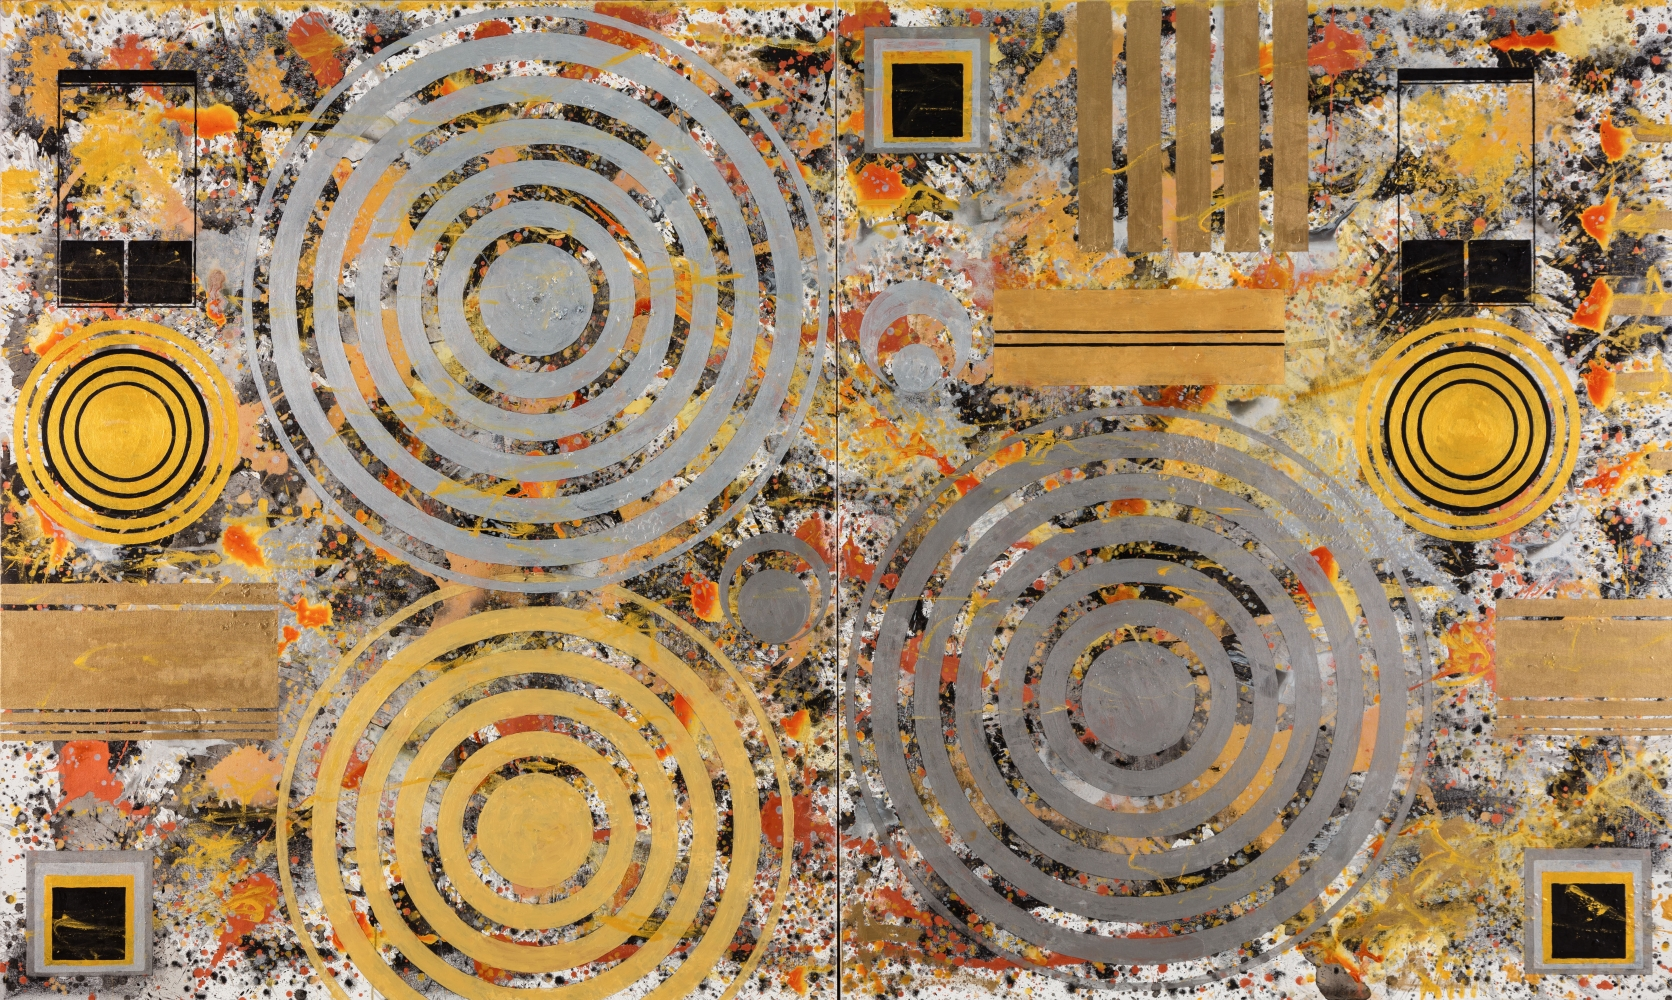 J. Steven Manolis, Metallica 72.120.01, 2018, Acrylic on canvas, 72 x 120 inches, For sale at Manolis Projects Art Gallery, Miami Fl